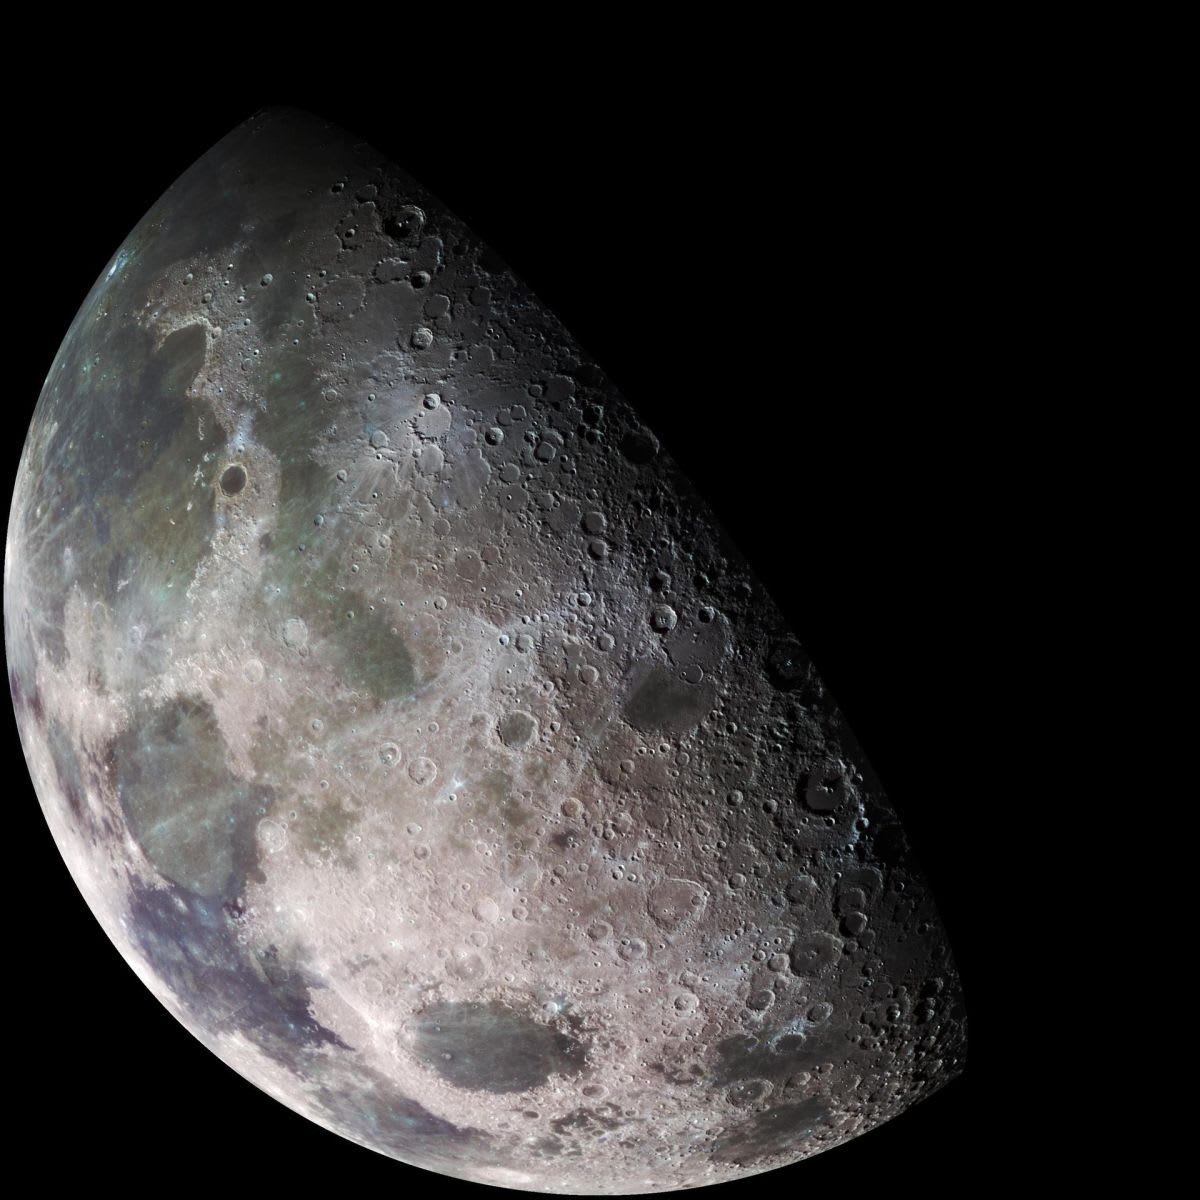 NASA selects 9 scientists to join 2022 Korea Pathfinder Lunar Orbiter mission